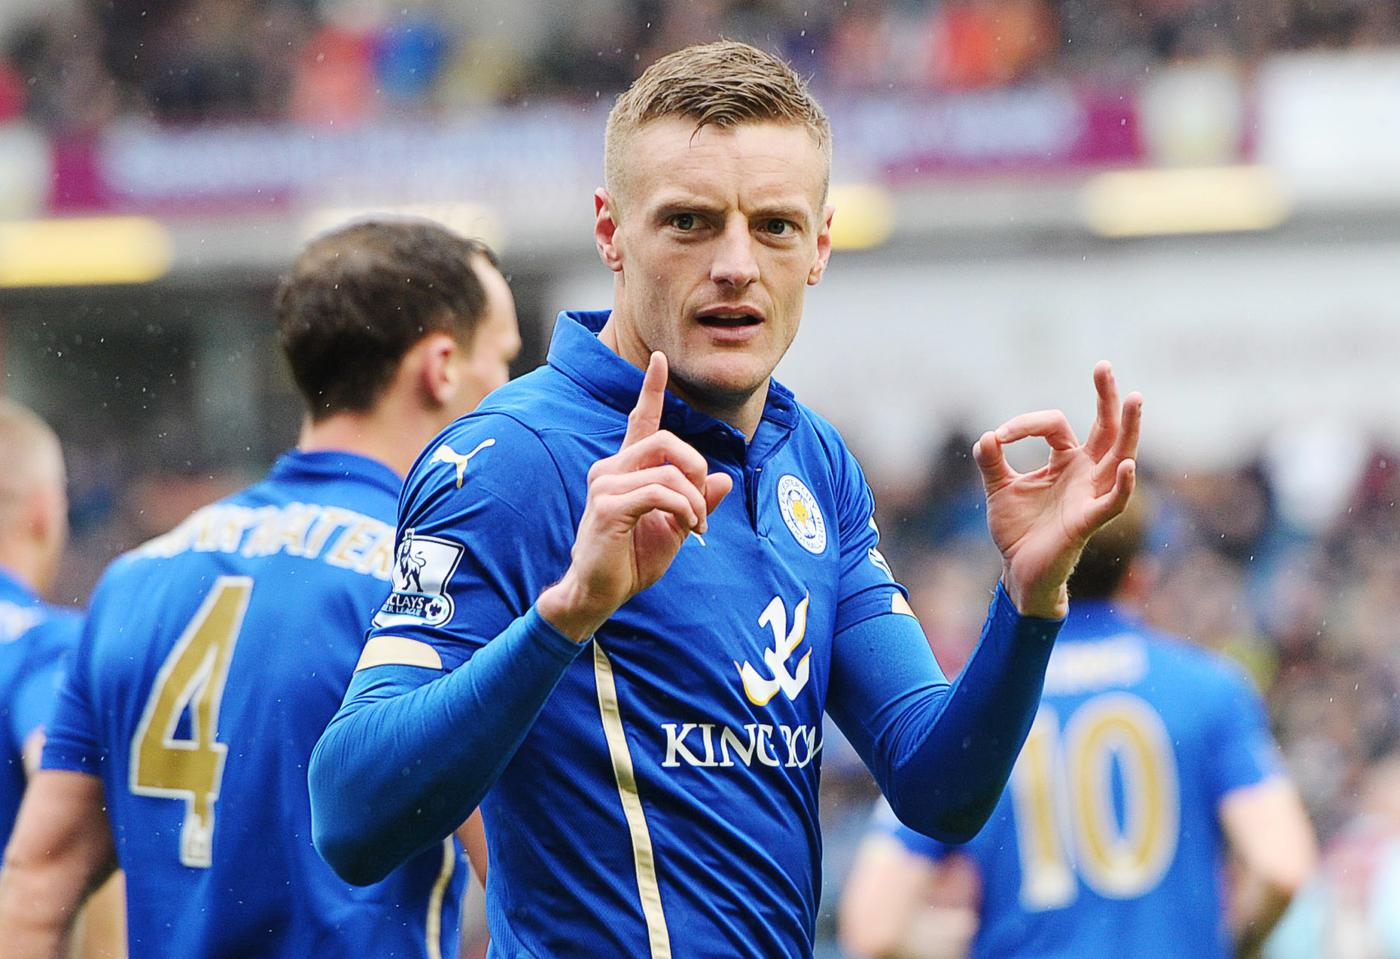 Roy Hodgson must give striker Jamie Vardy a real chance to show his Leicester form on international stage for England